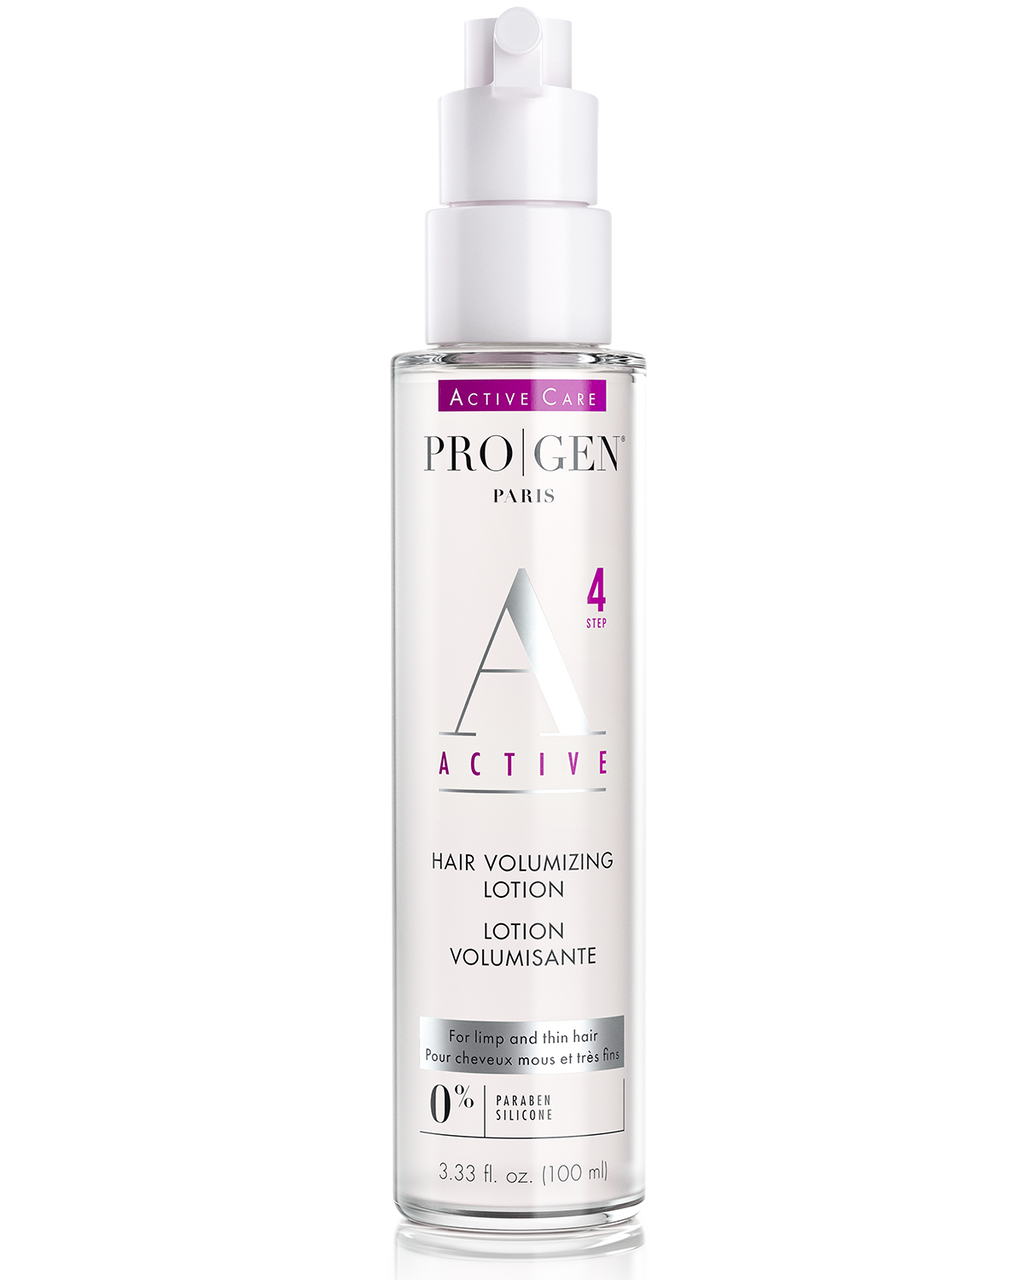 Active Hair Volumizing Lotion for Thinning Hair